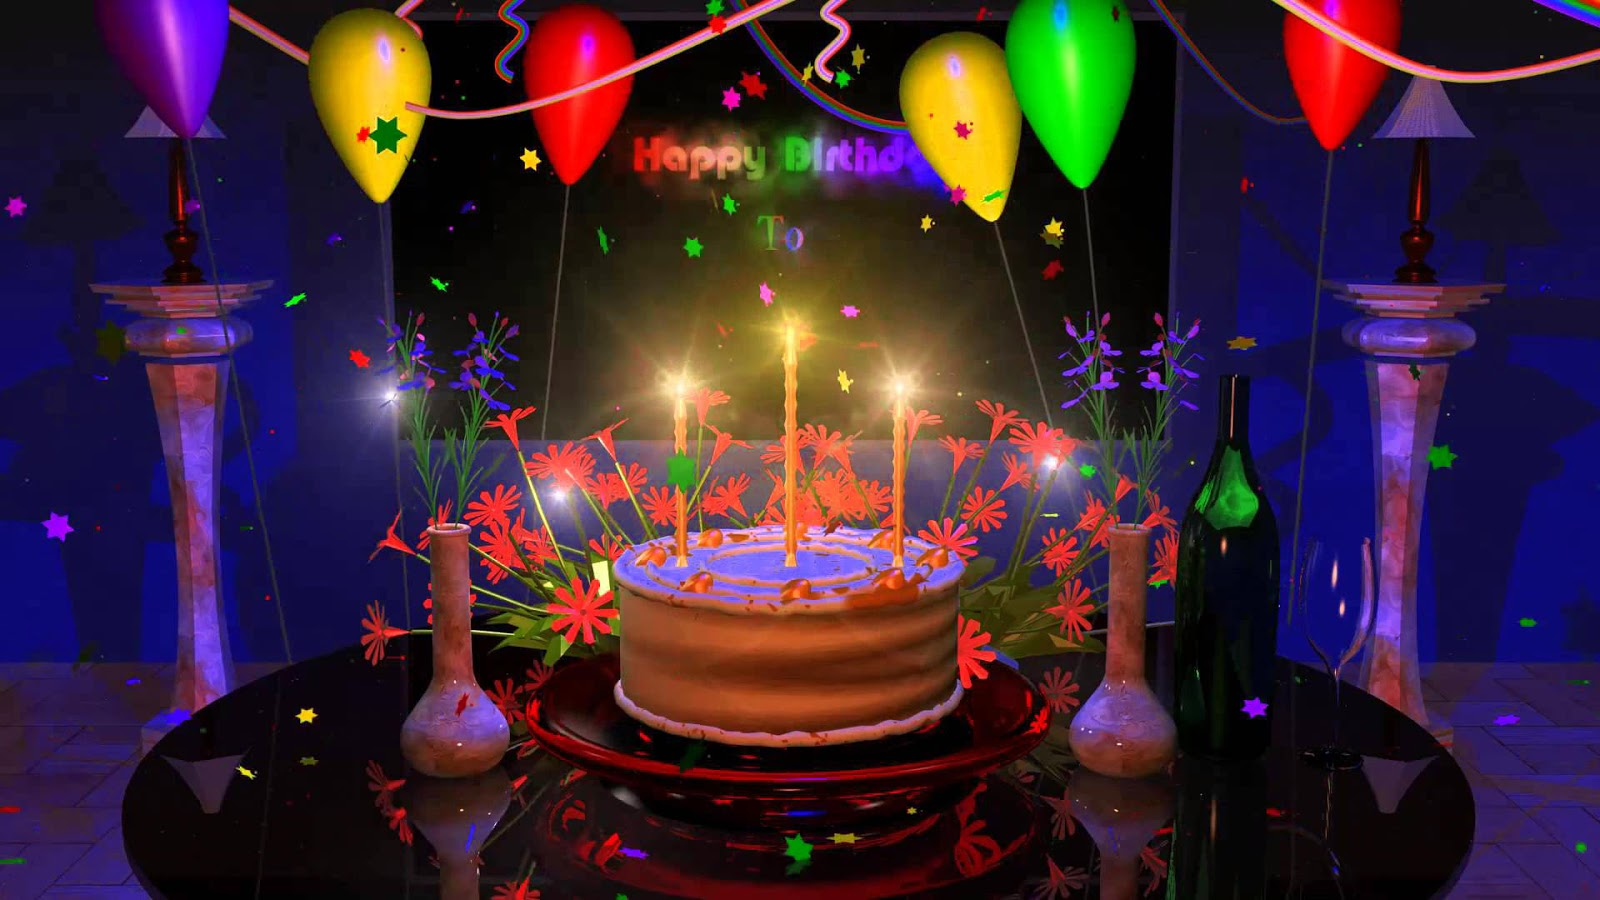 Top 100 happy birthday cake images pictures for 3d decoration for birthday